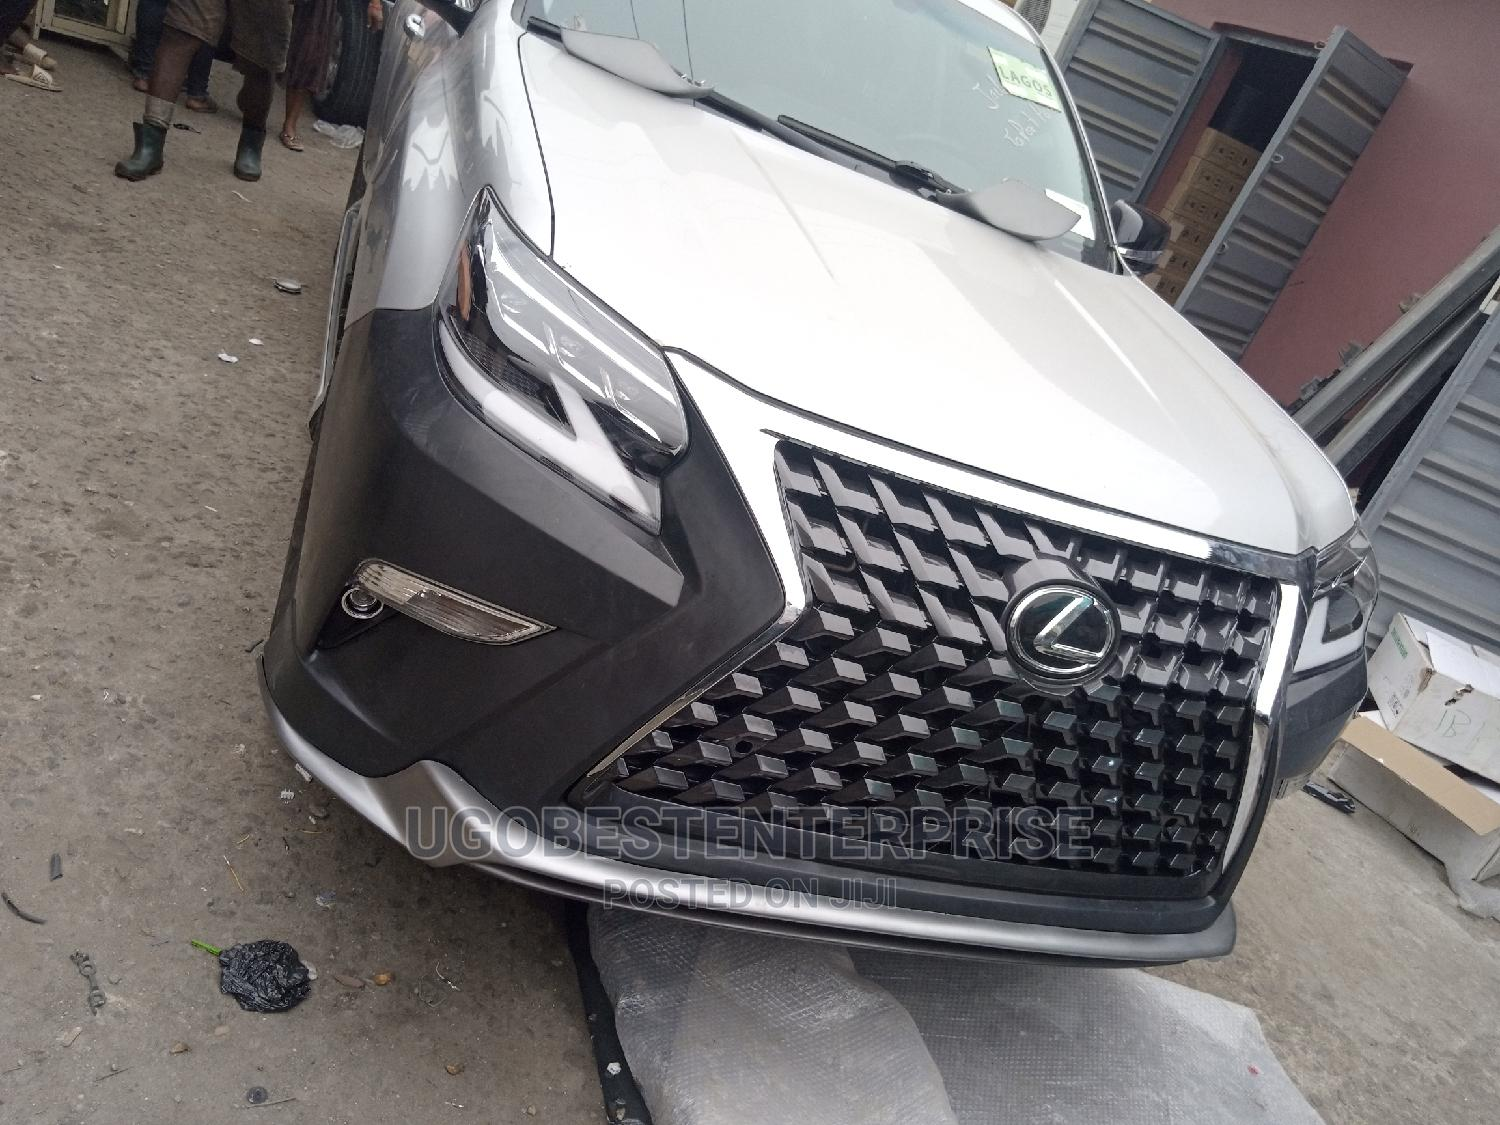 Upgrade Your Lexus Gx460 From 2010 to 2021 Model